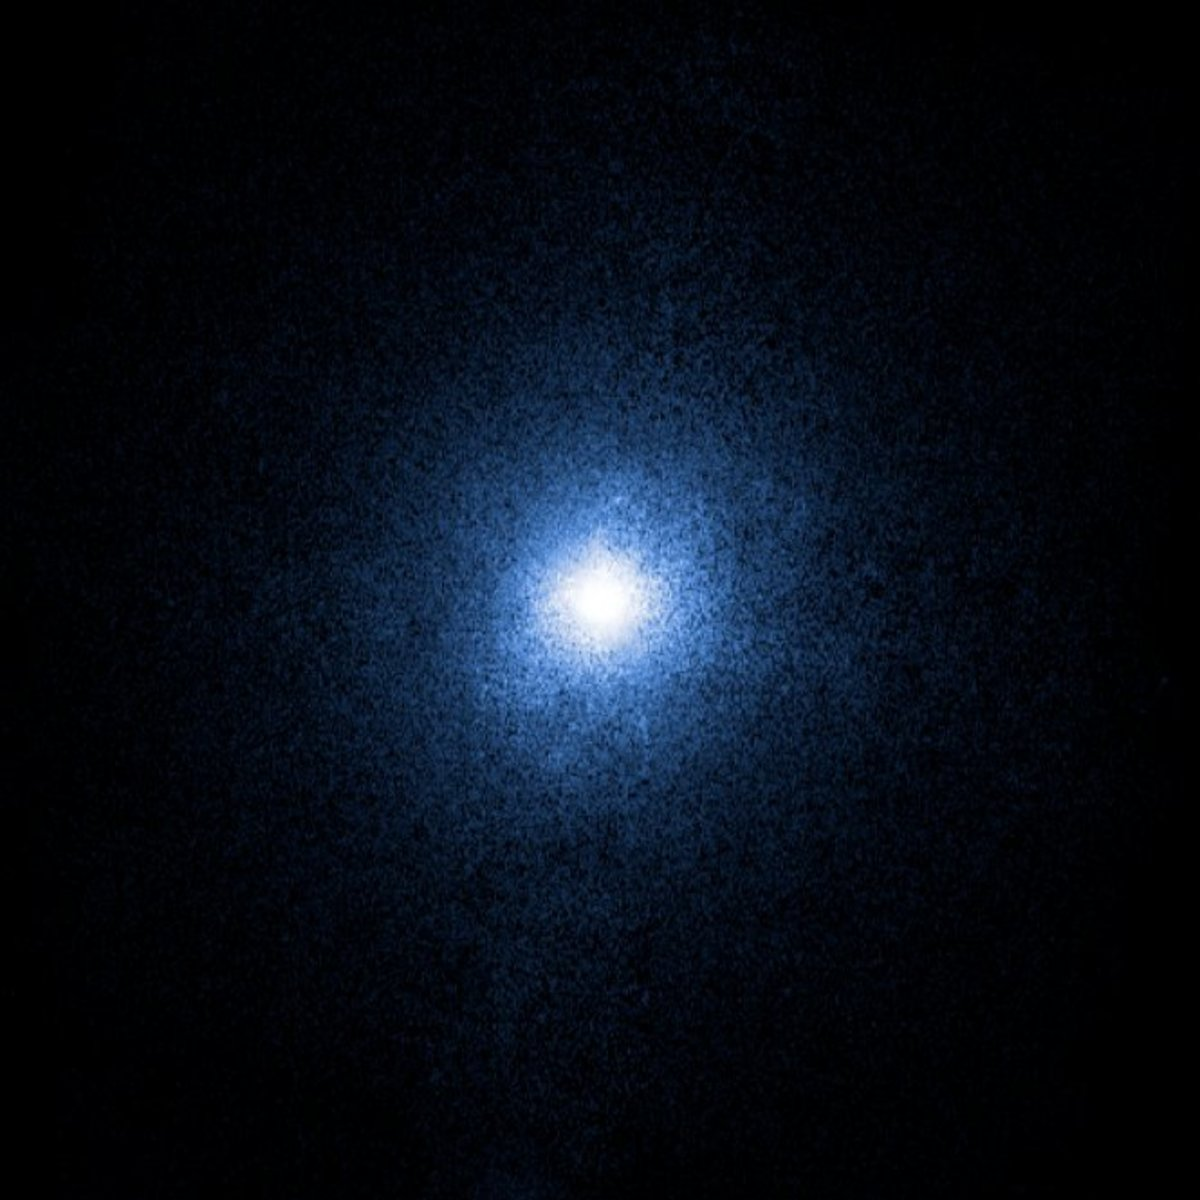 With a mass of about 20 Suns, star HDE 226868 is on the threshold of what it takes to become a black hole... assuming its hidden companion Cygnus X-1, the first black hole ever discovered, doesn't trim it down to neutron star candidacy.